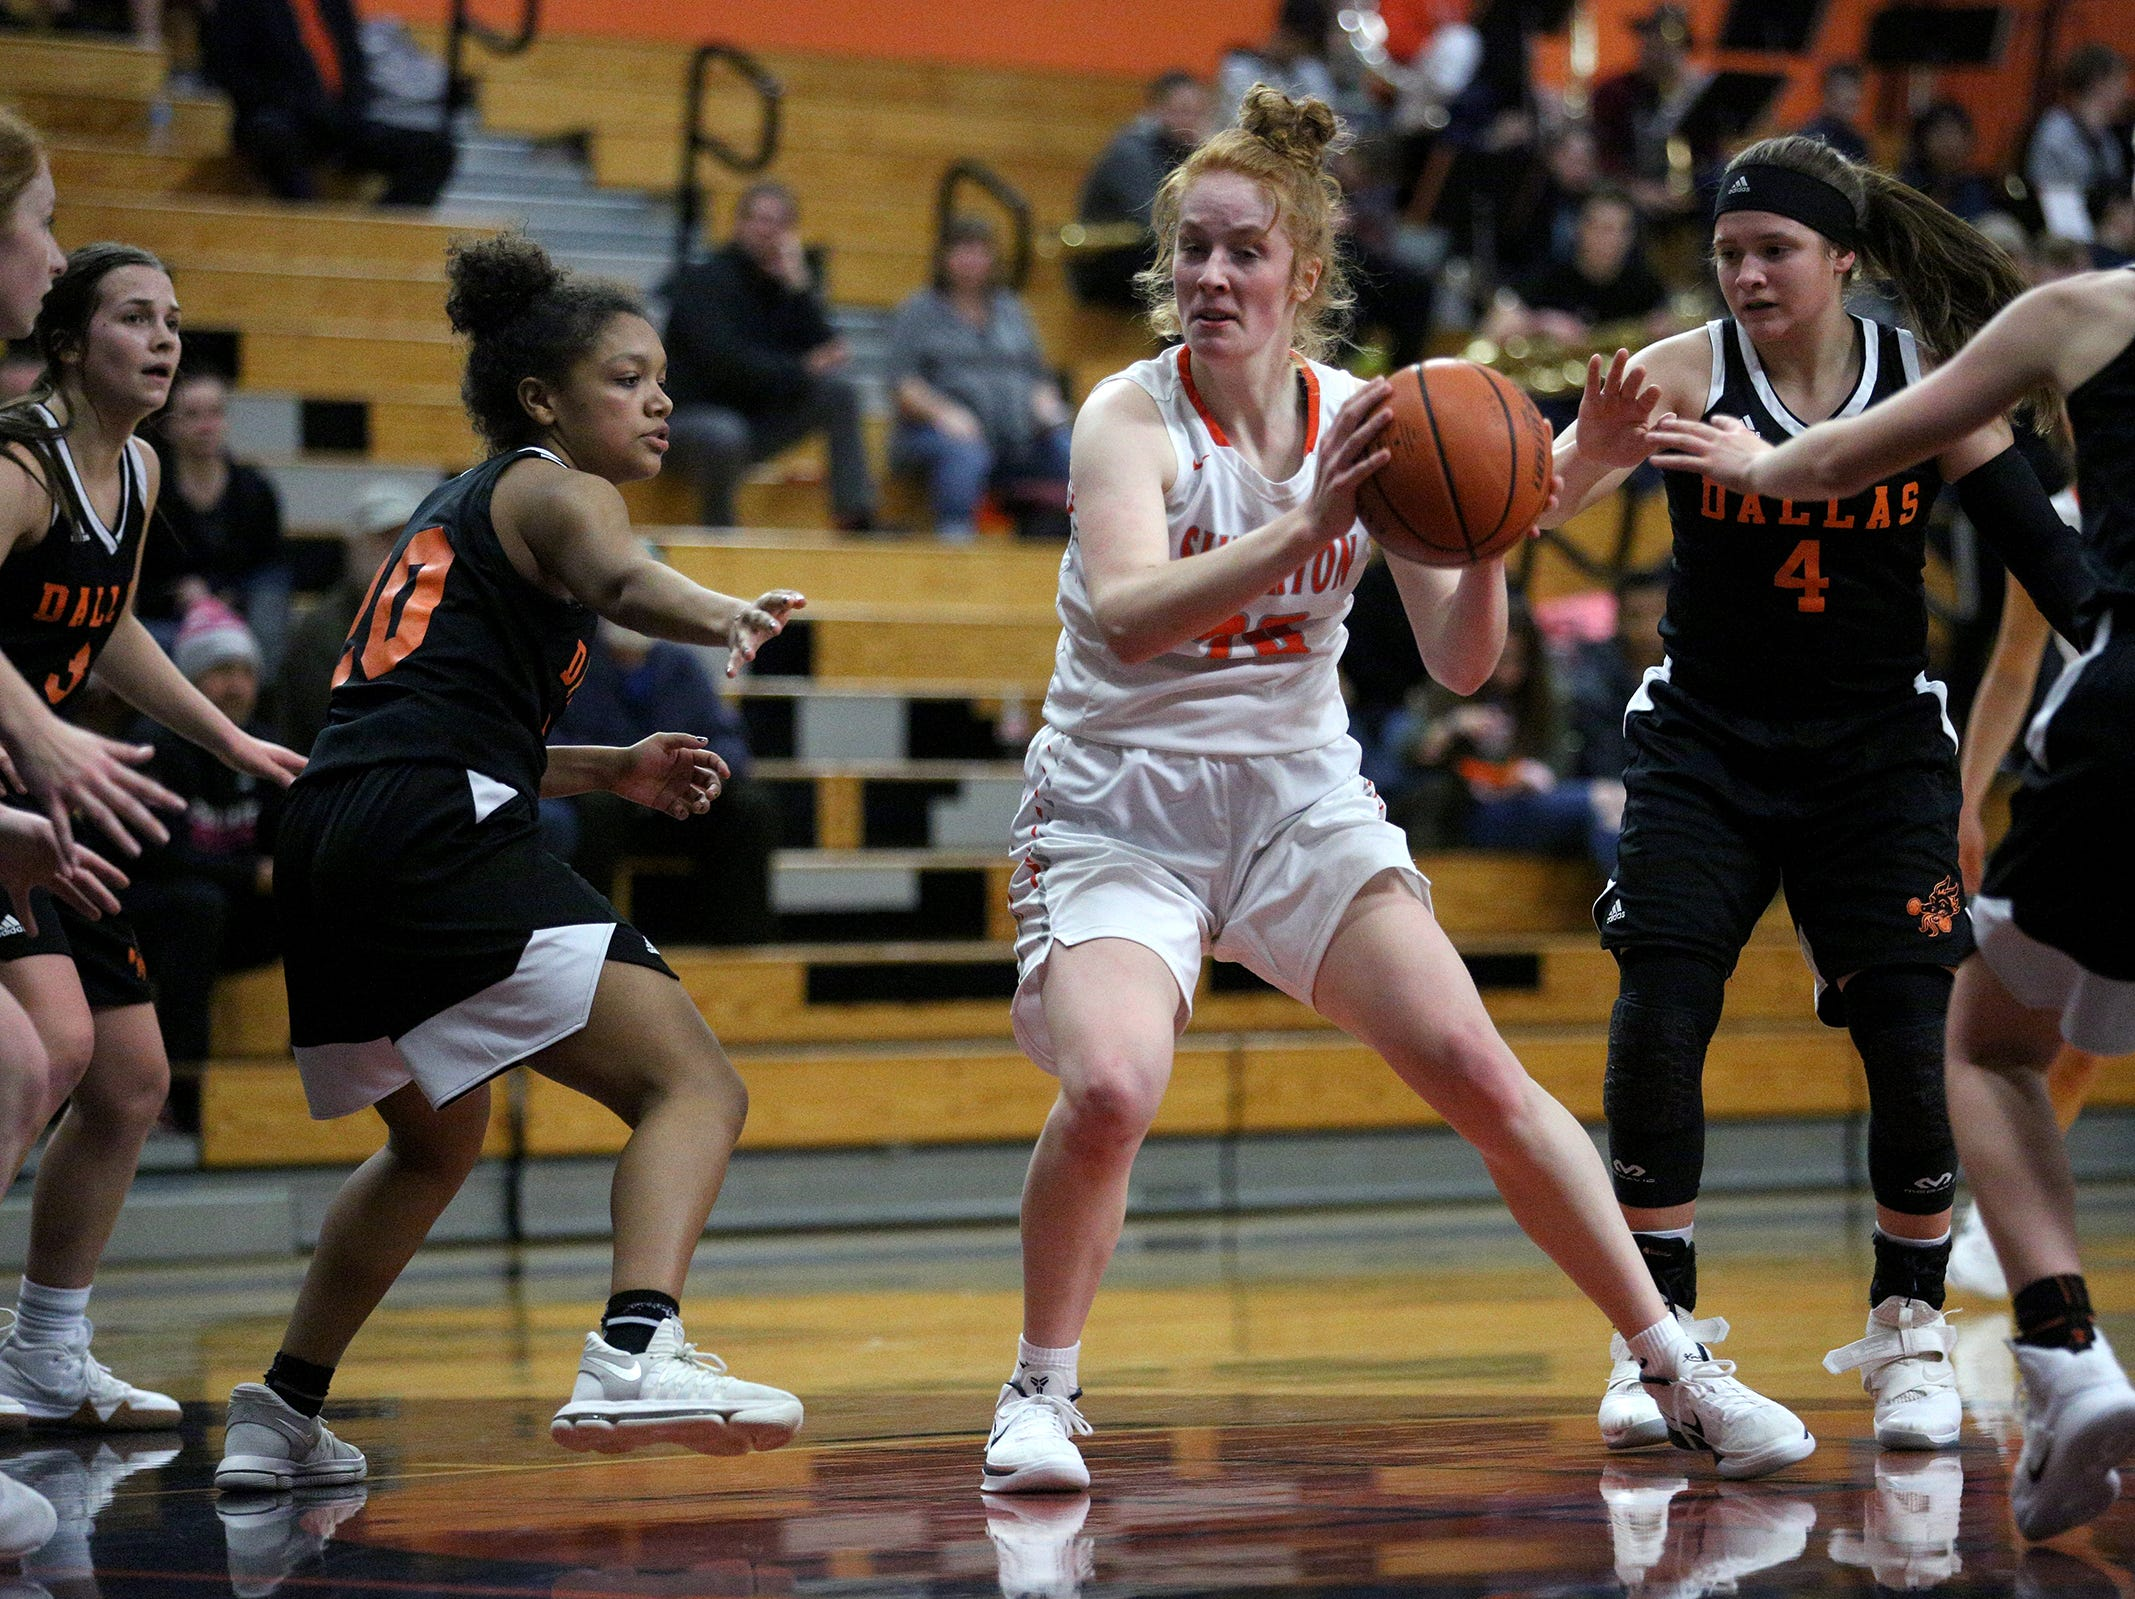 Silverton's Riley Traeger (20) protests the ball during the Dallas High School vs. Silverton High School girls basketball game in Silverton on Tuesday, Dec. 8, 2019.